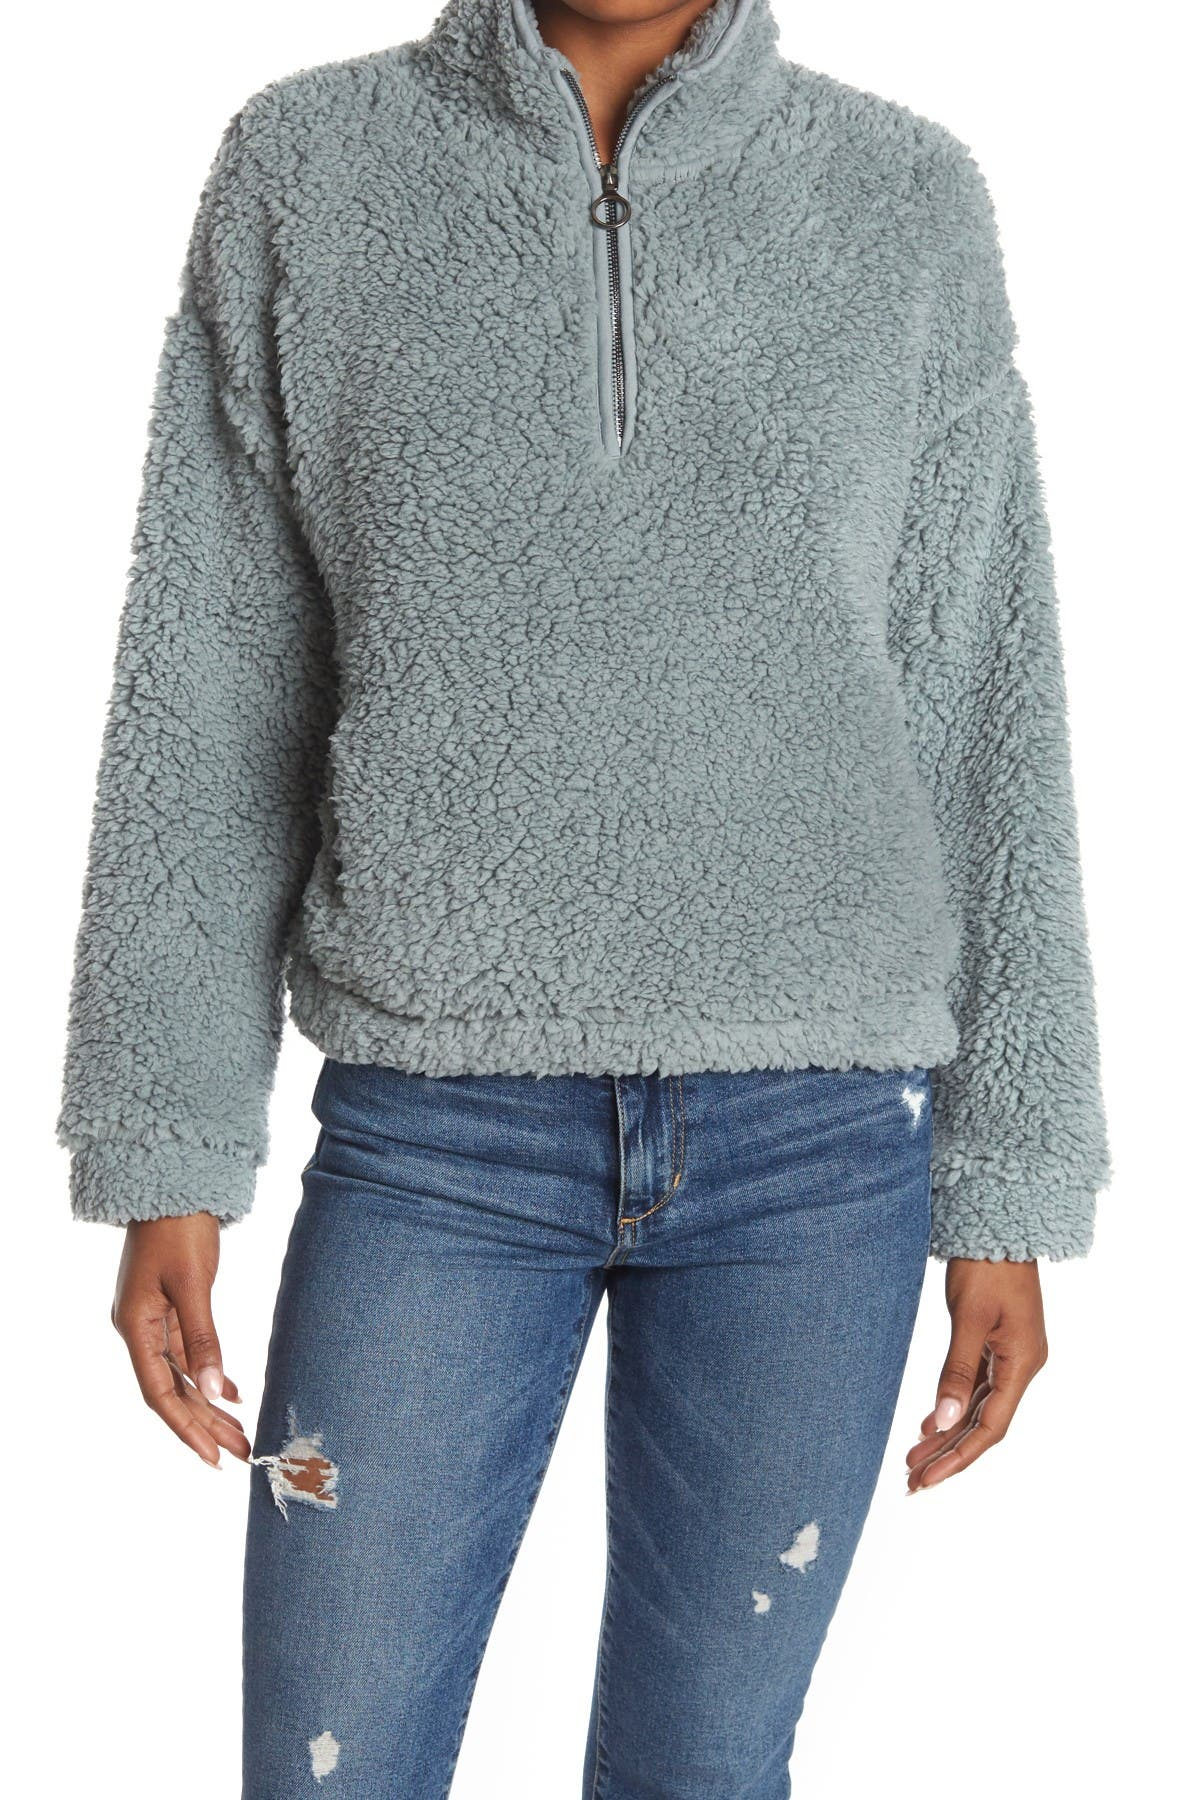 Image of THREAD AND SUPPLY O-Ring 1/4 Zip Faux Shearling Jacket